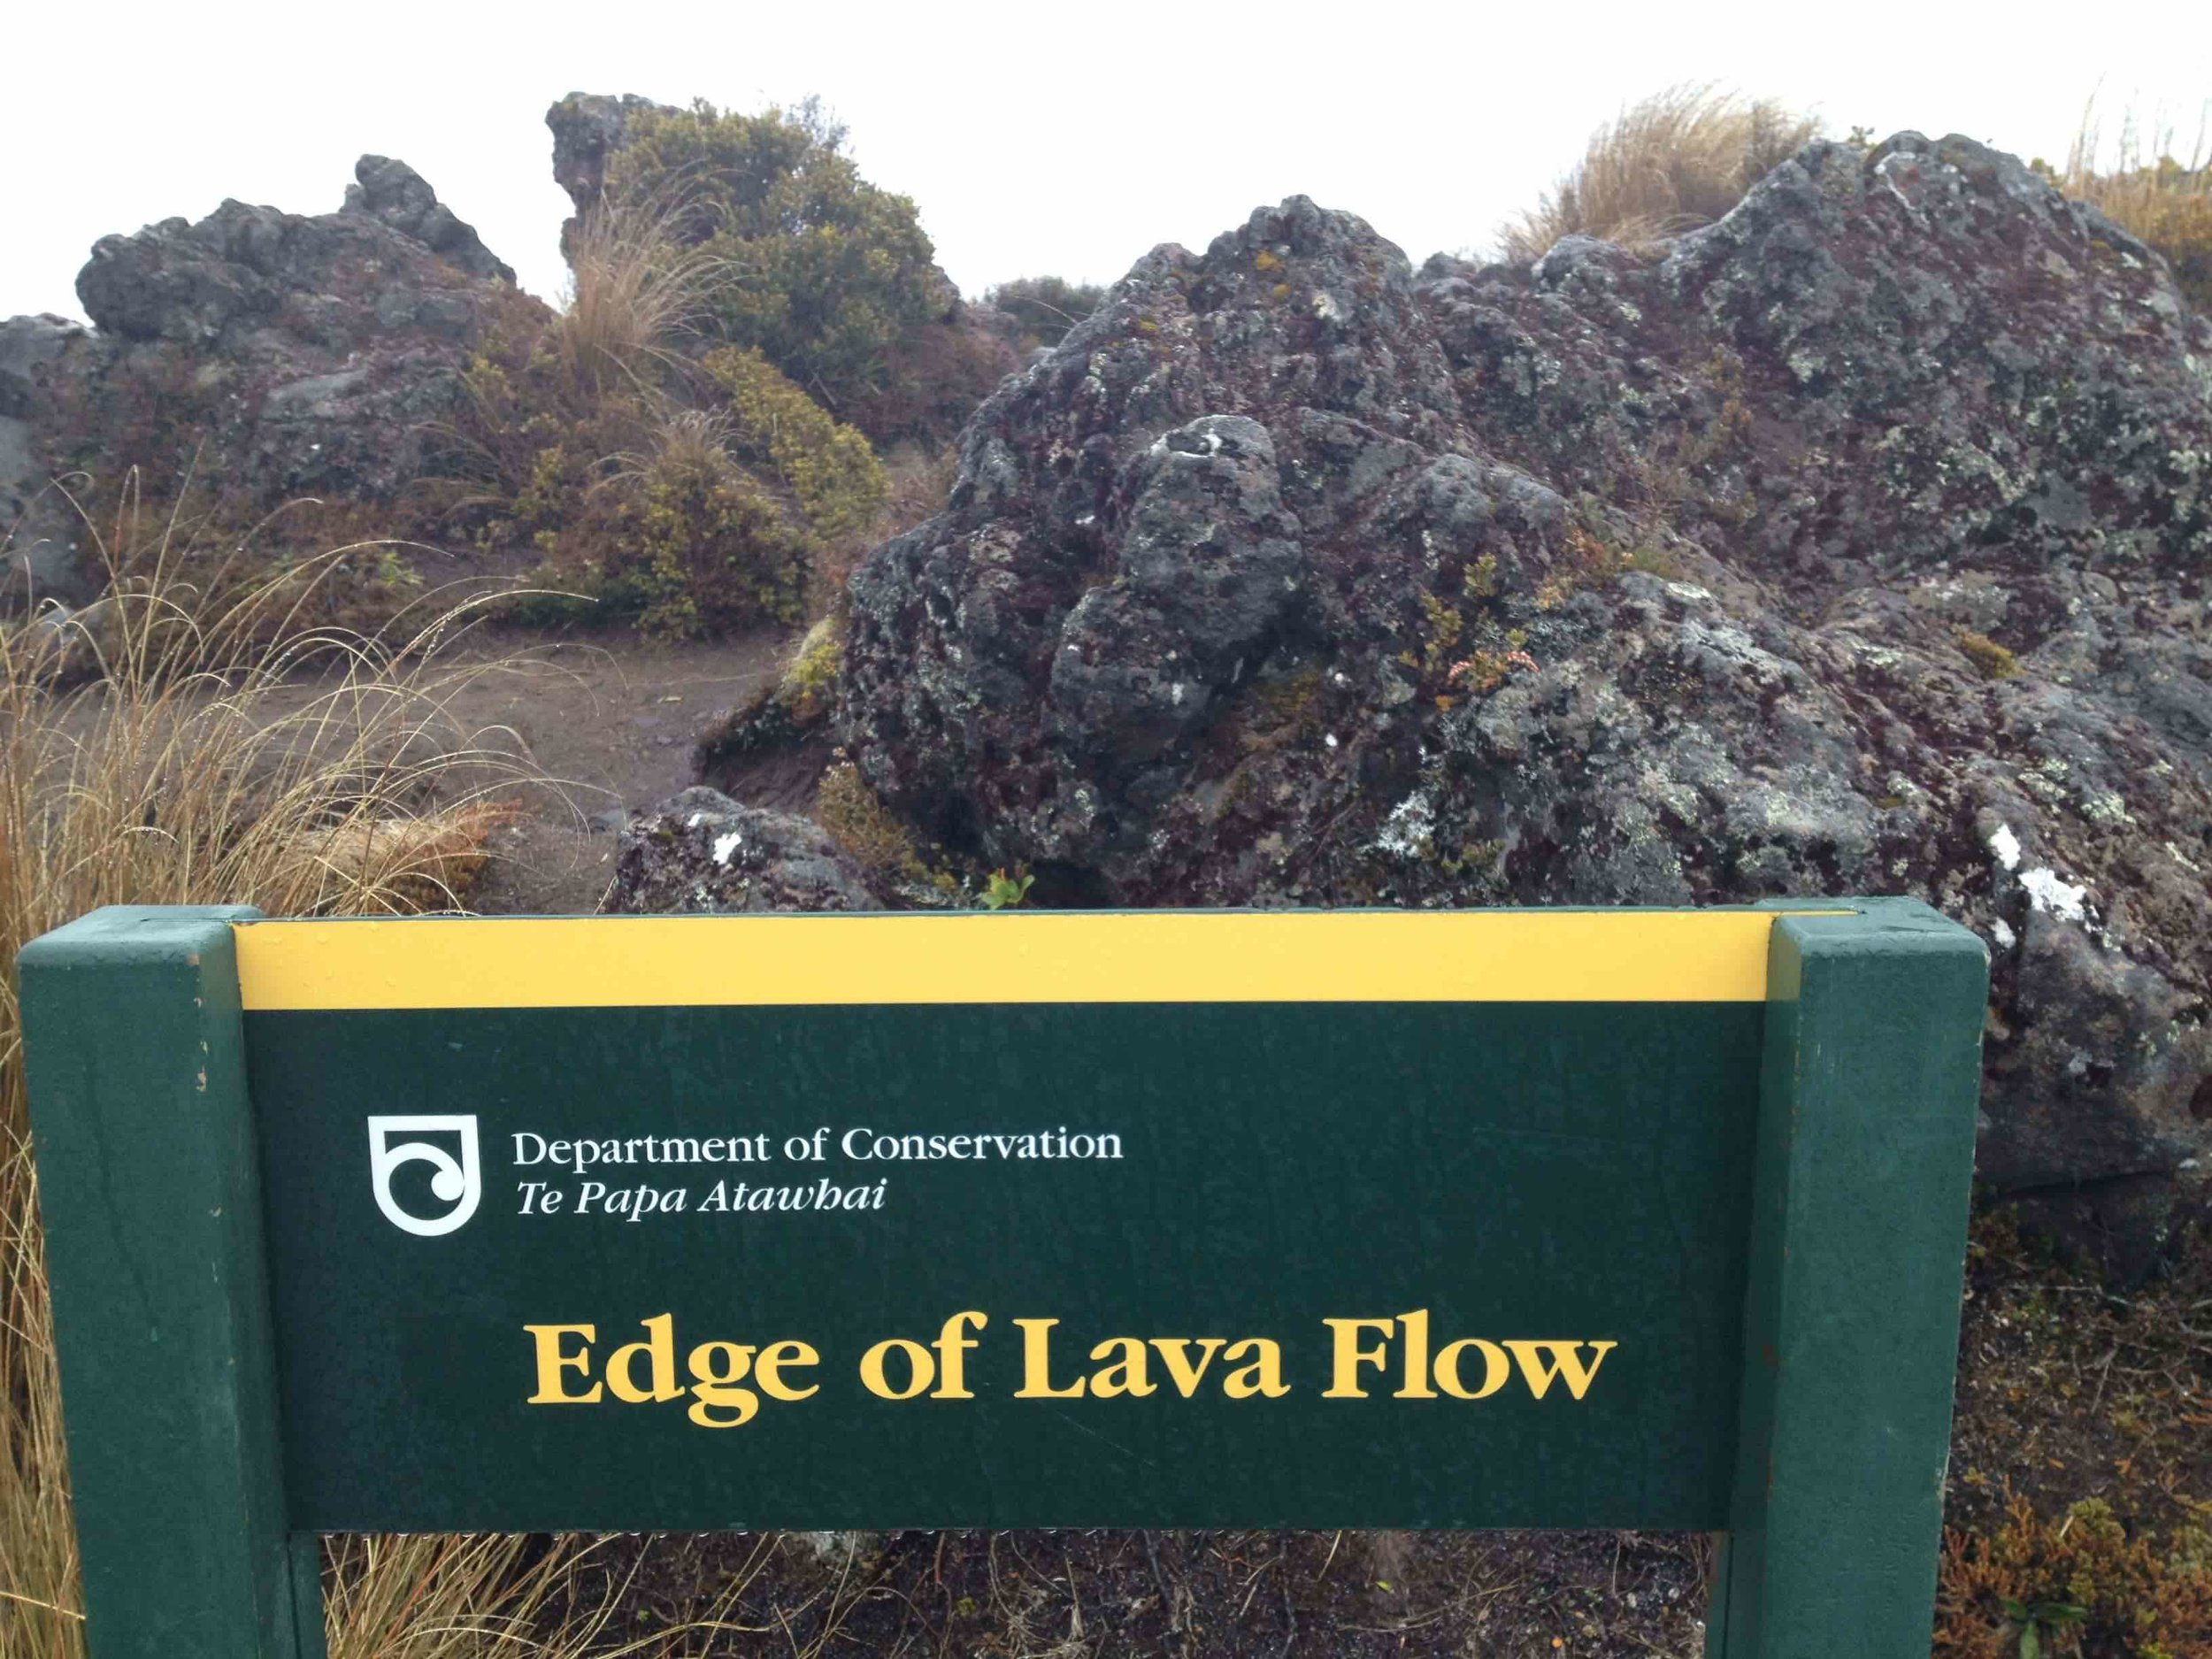 Lava flow from Mount Ruapehu, New Zealand